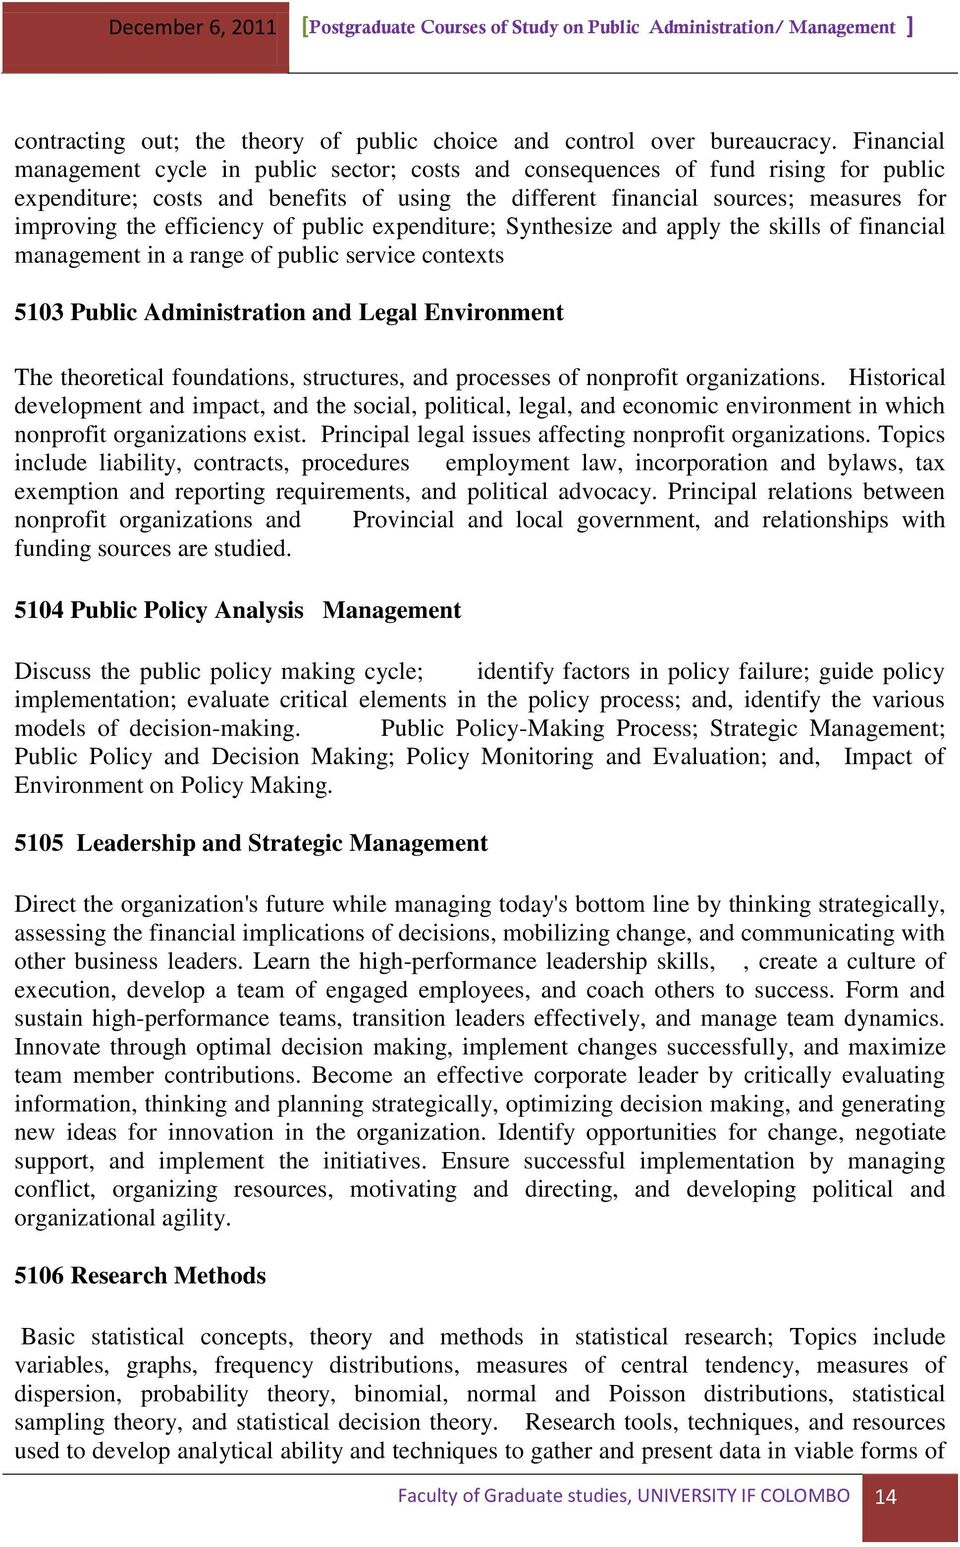 efficiency of public expenditure; Synthesize and apply the skills of financial management in a range of public service contexts 5103 Public Administration and Legal Environment The theoretical